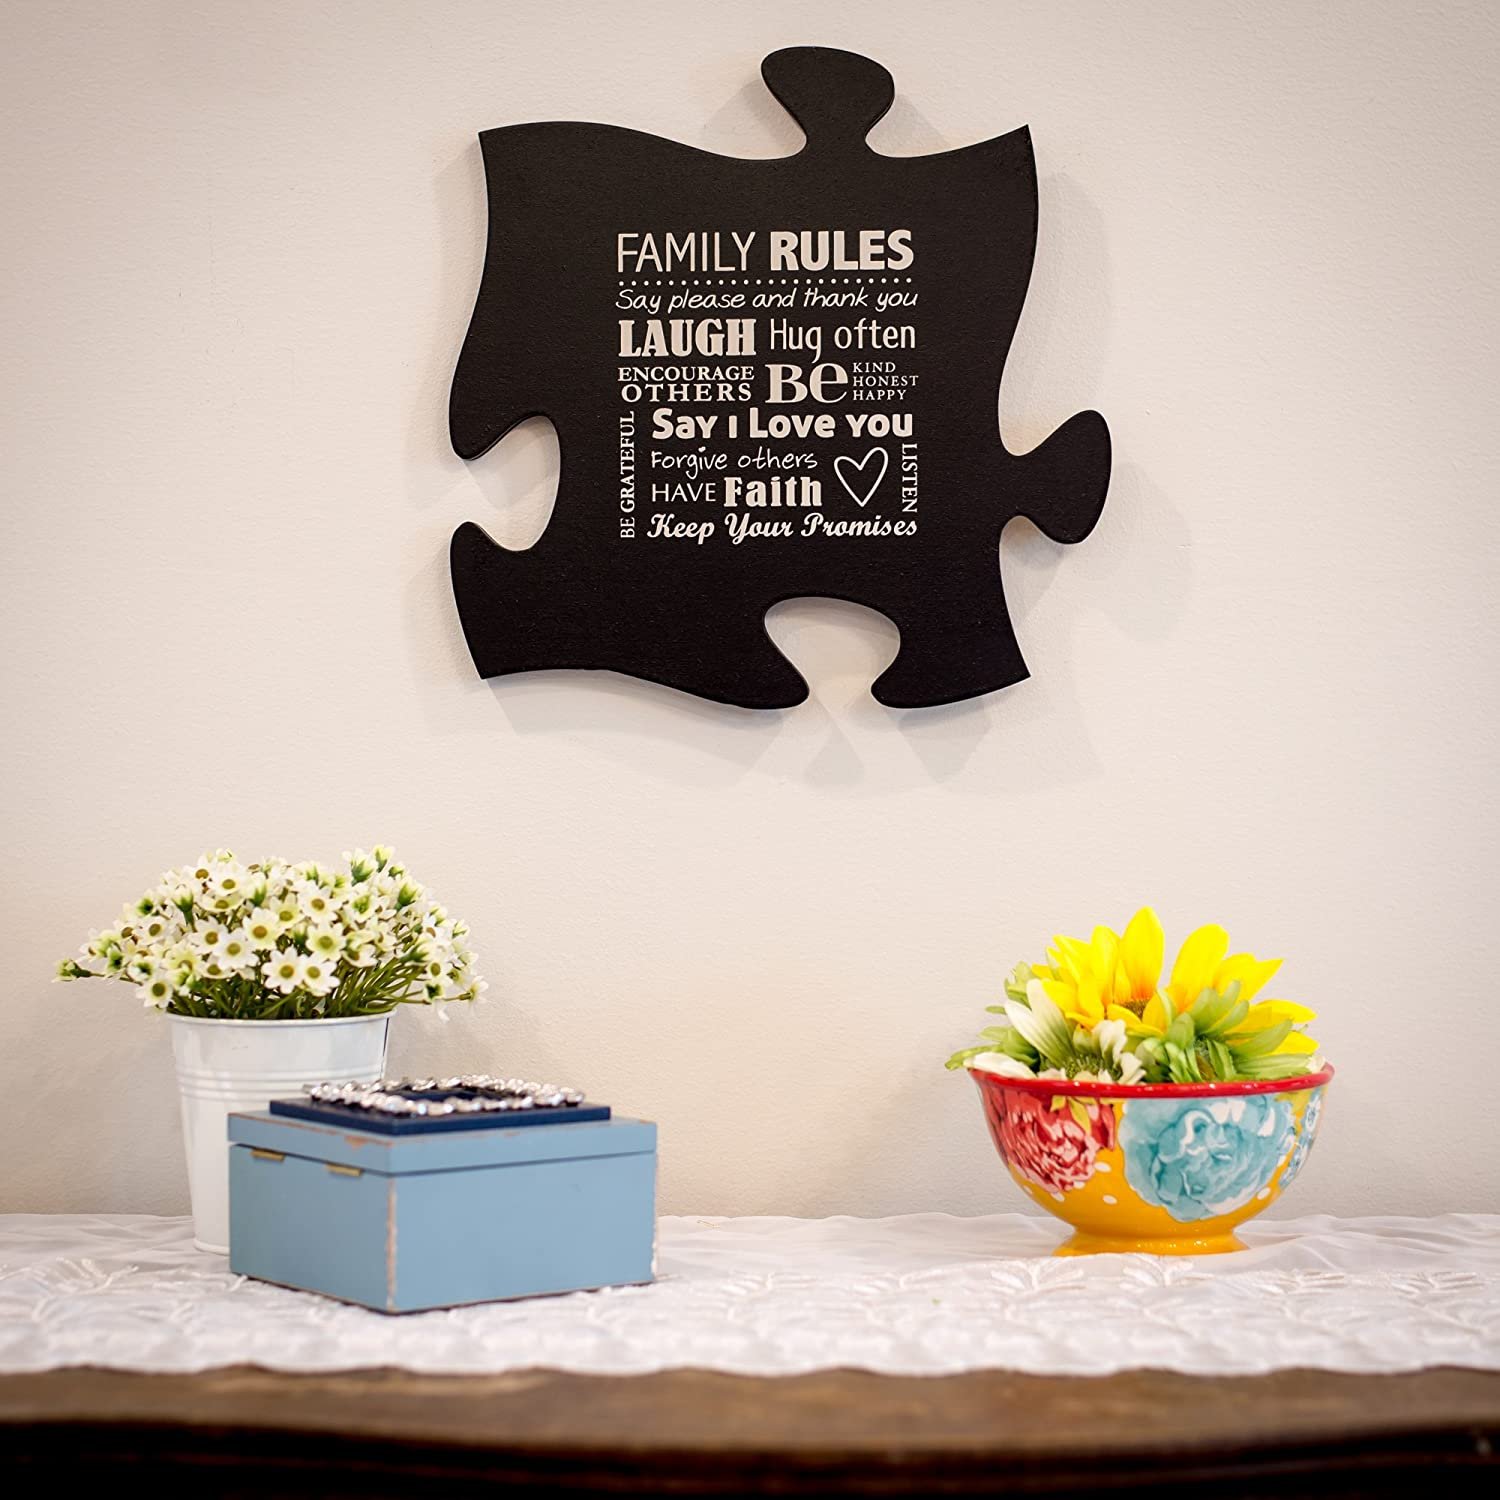 Family Rules - Black P Graham Dunn Puzzle Piece Wall Art By